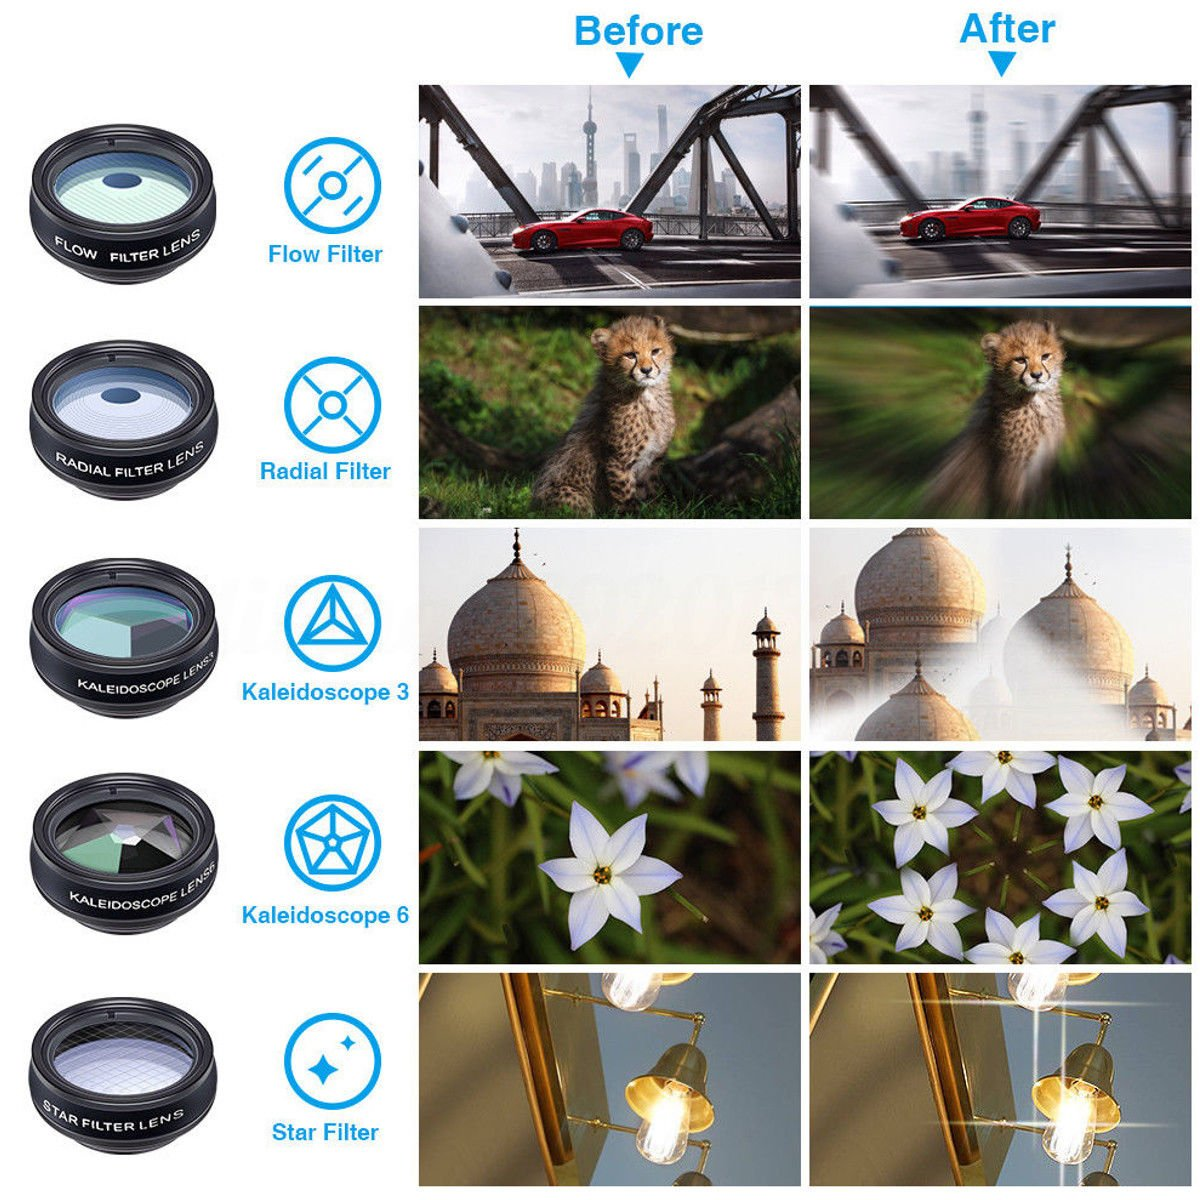 Apexel 10 in 1 Cell Phone Camera Lens Kit Wide Angle Lens & Macro Lens+Fisheye Lens+Telephoto Lens+CPL/Flow/Radial/Star Filter+Kaleidoscope 3/6 Lens for iPhone Samsung Sony and Most of Smartphone by Apexel